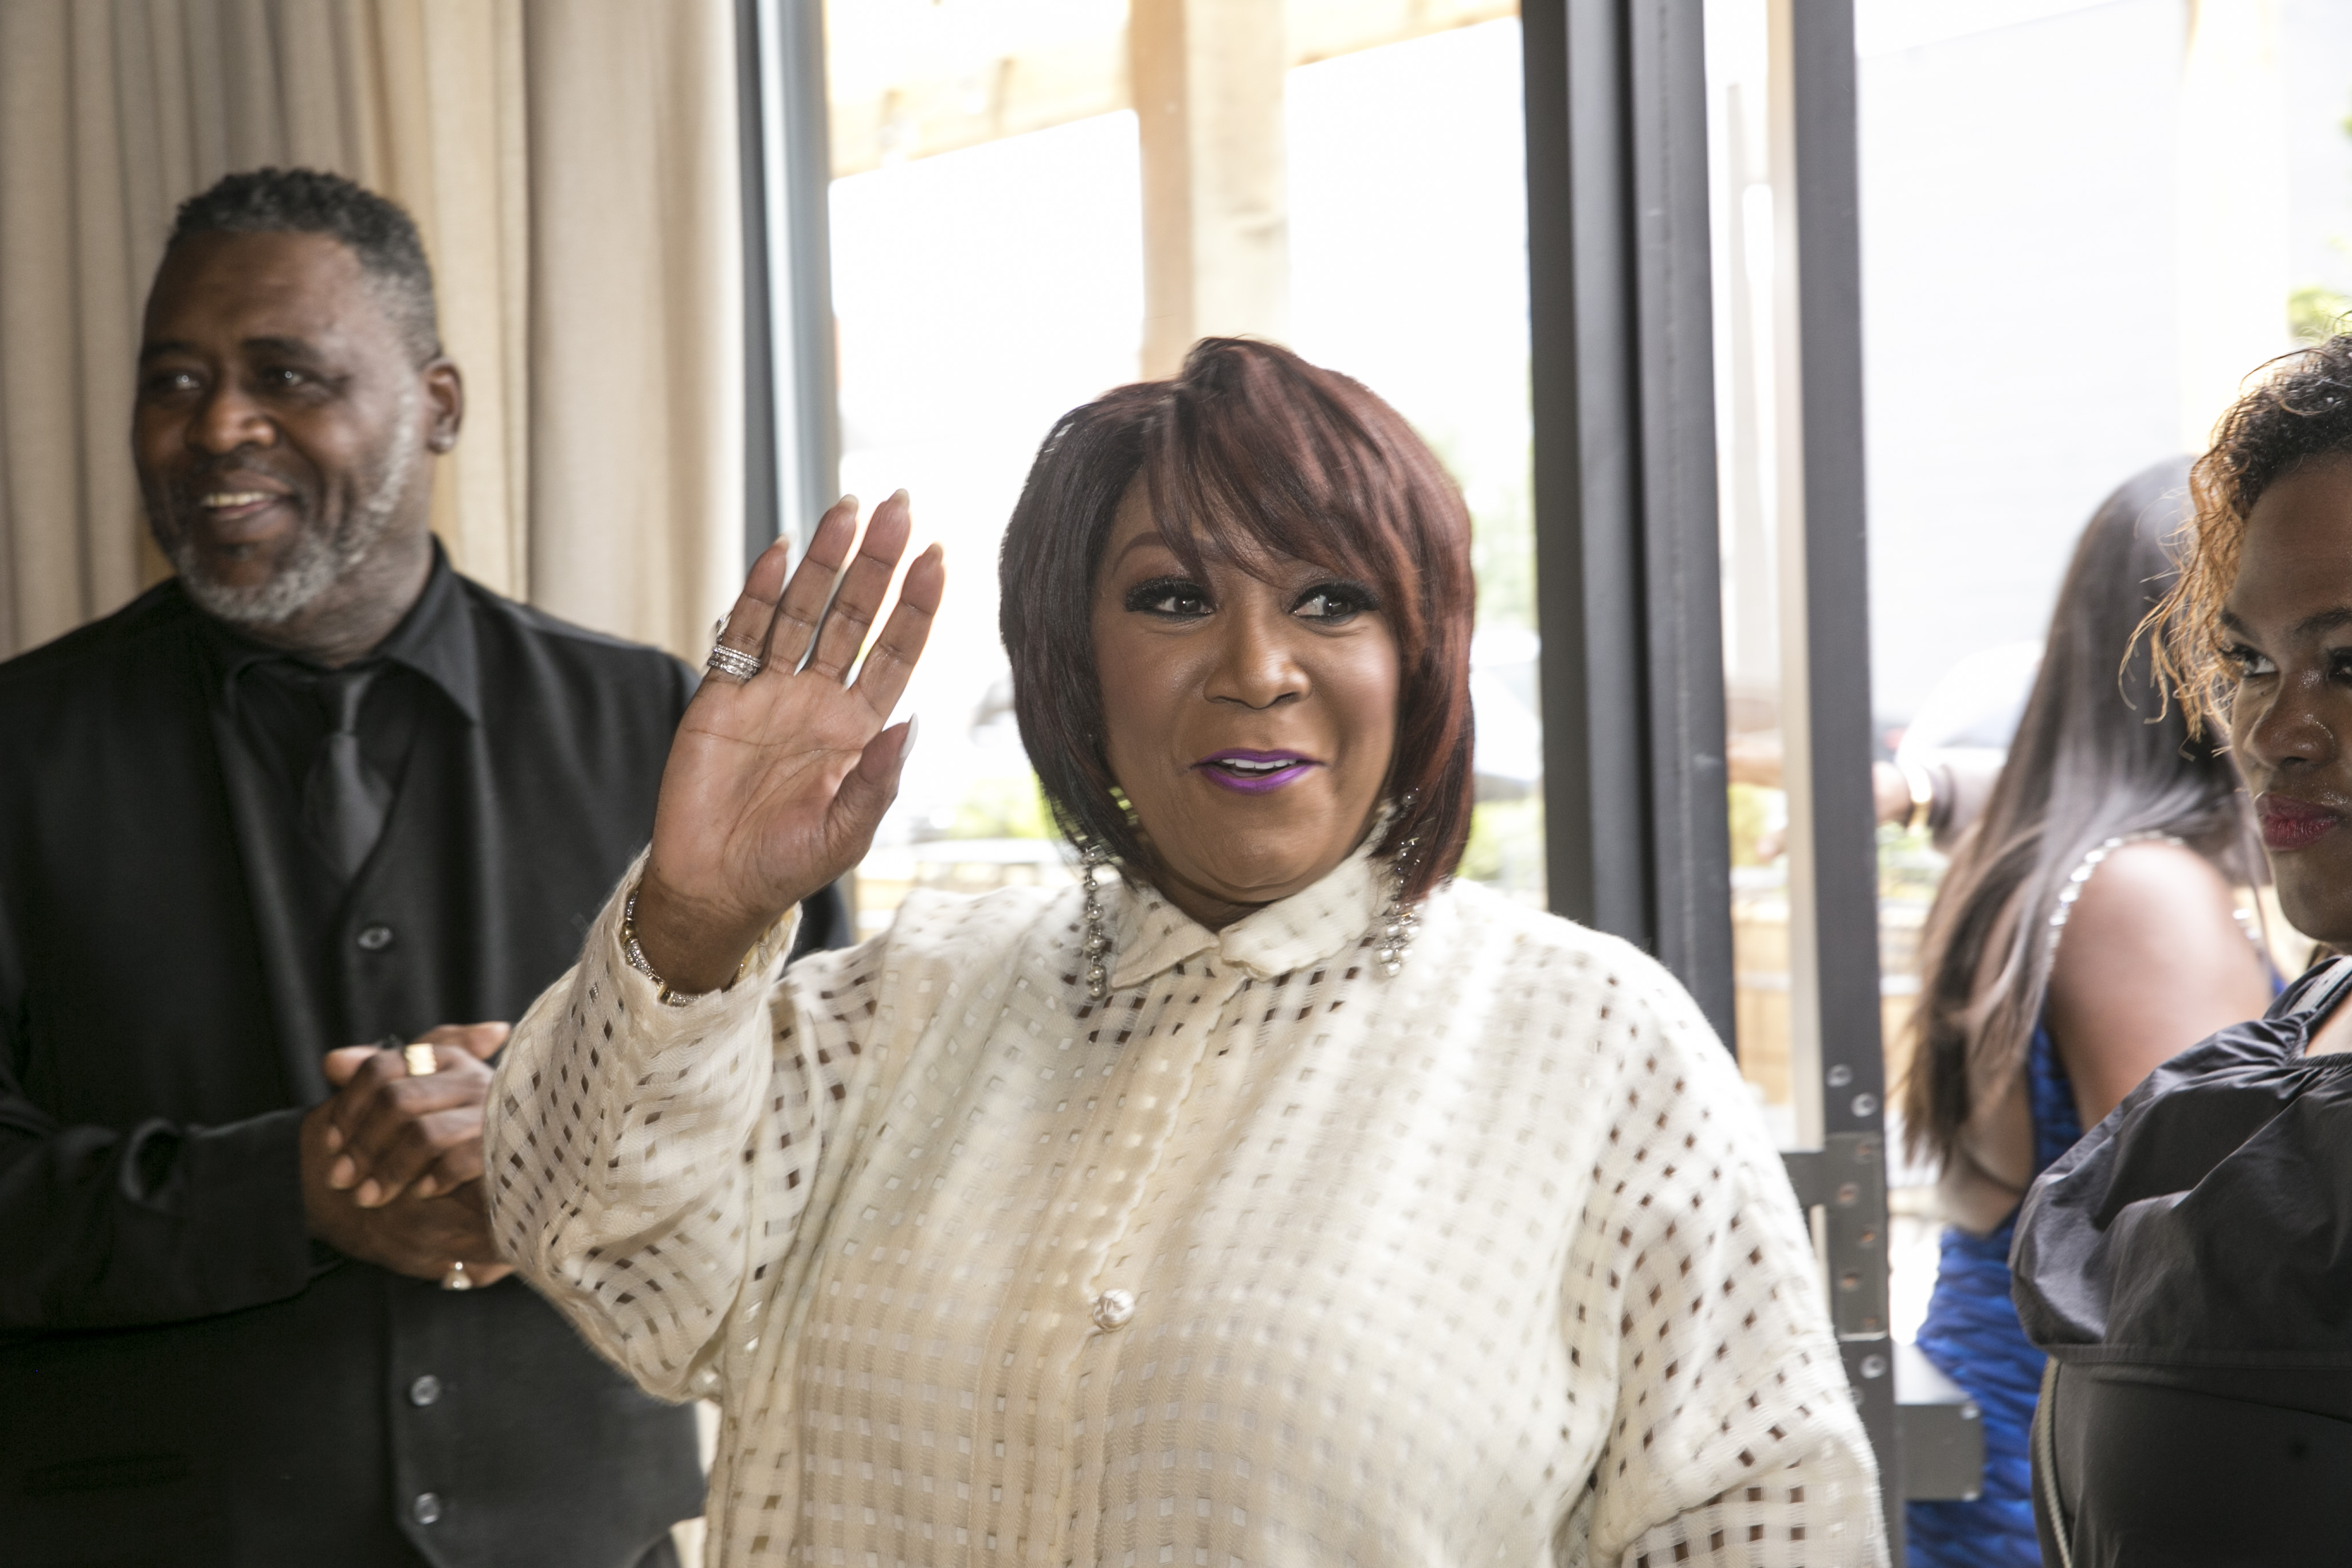 NATIONAL MUSEUM OF AFRICAN AMERICAN MUSIC CELEBRATES BLACK MUSIC MONTH WITH LEGENDS LUNCH HONORING PATTI LABELLE, KIRK FRANKLIN